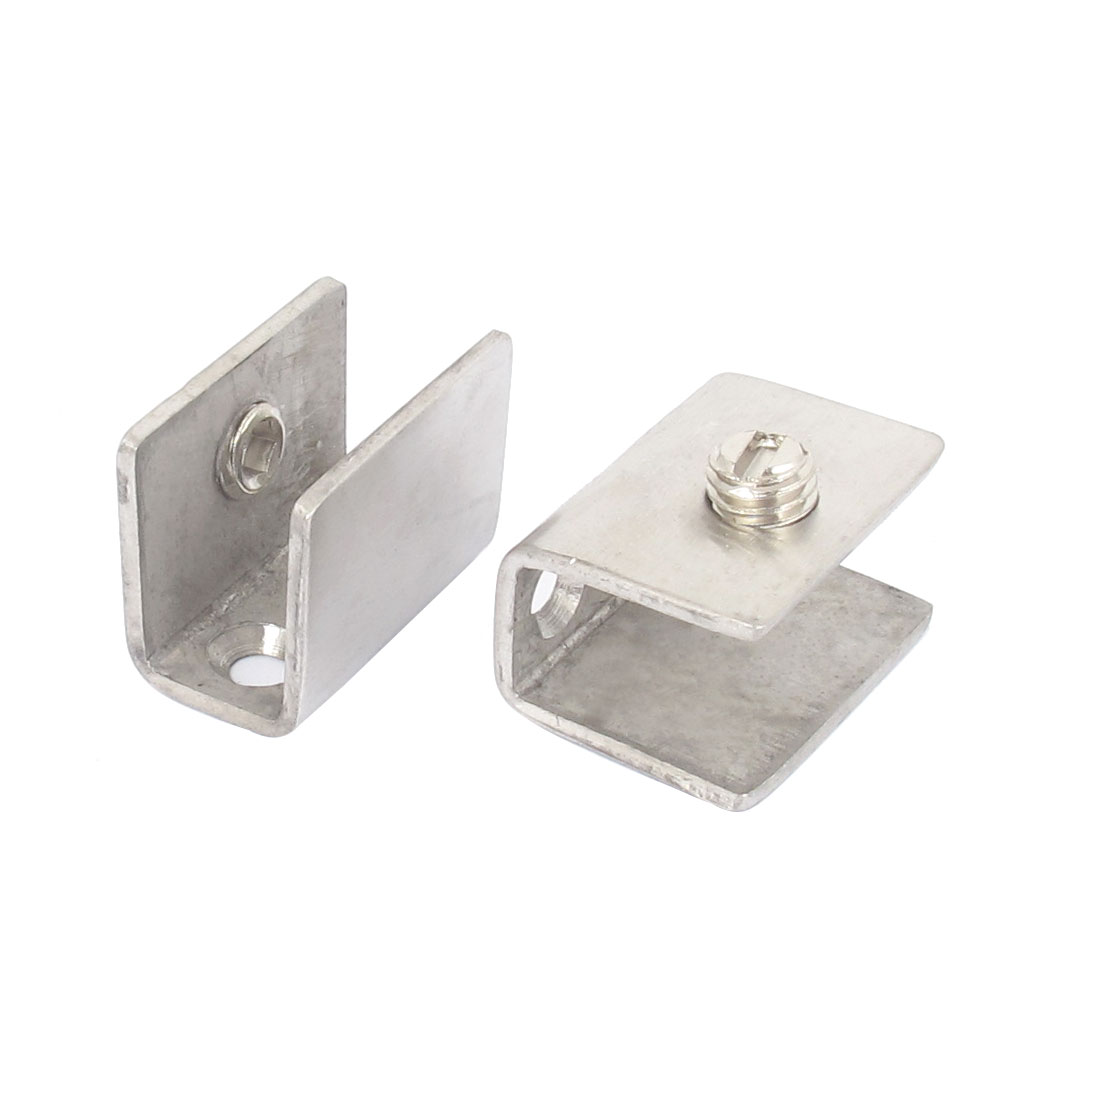 8mm-12mm Thickness Metal Rectangle Adjustable Screw Mounted Glass Clamp Clip Holder 2pcs